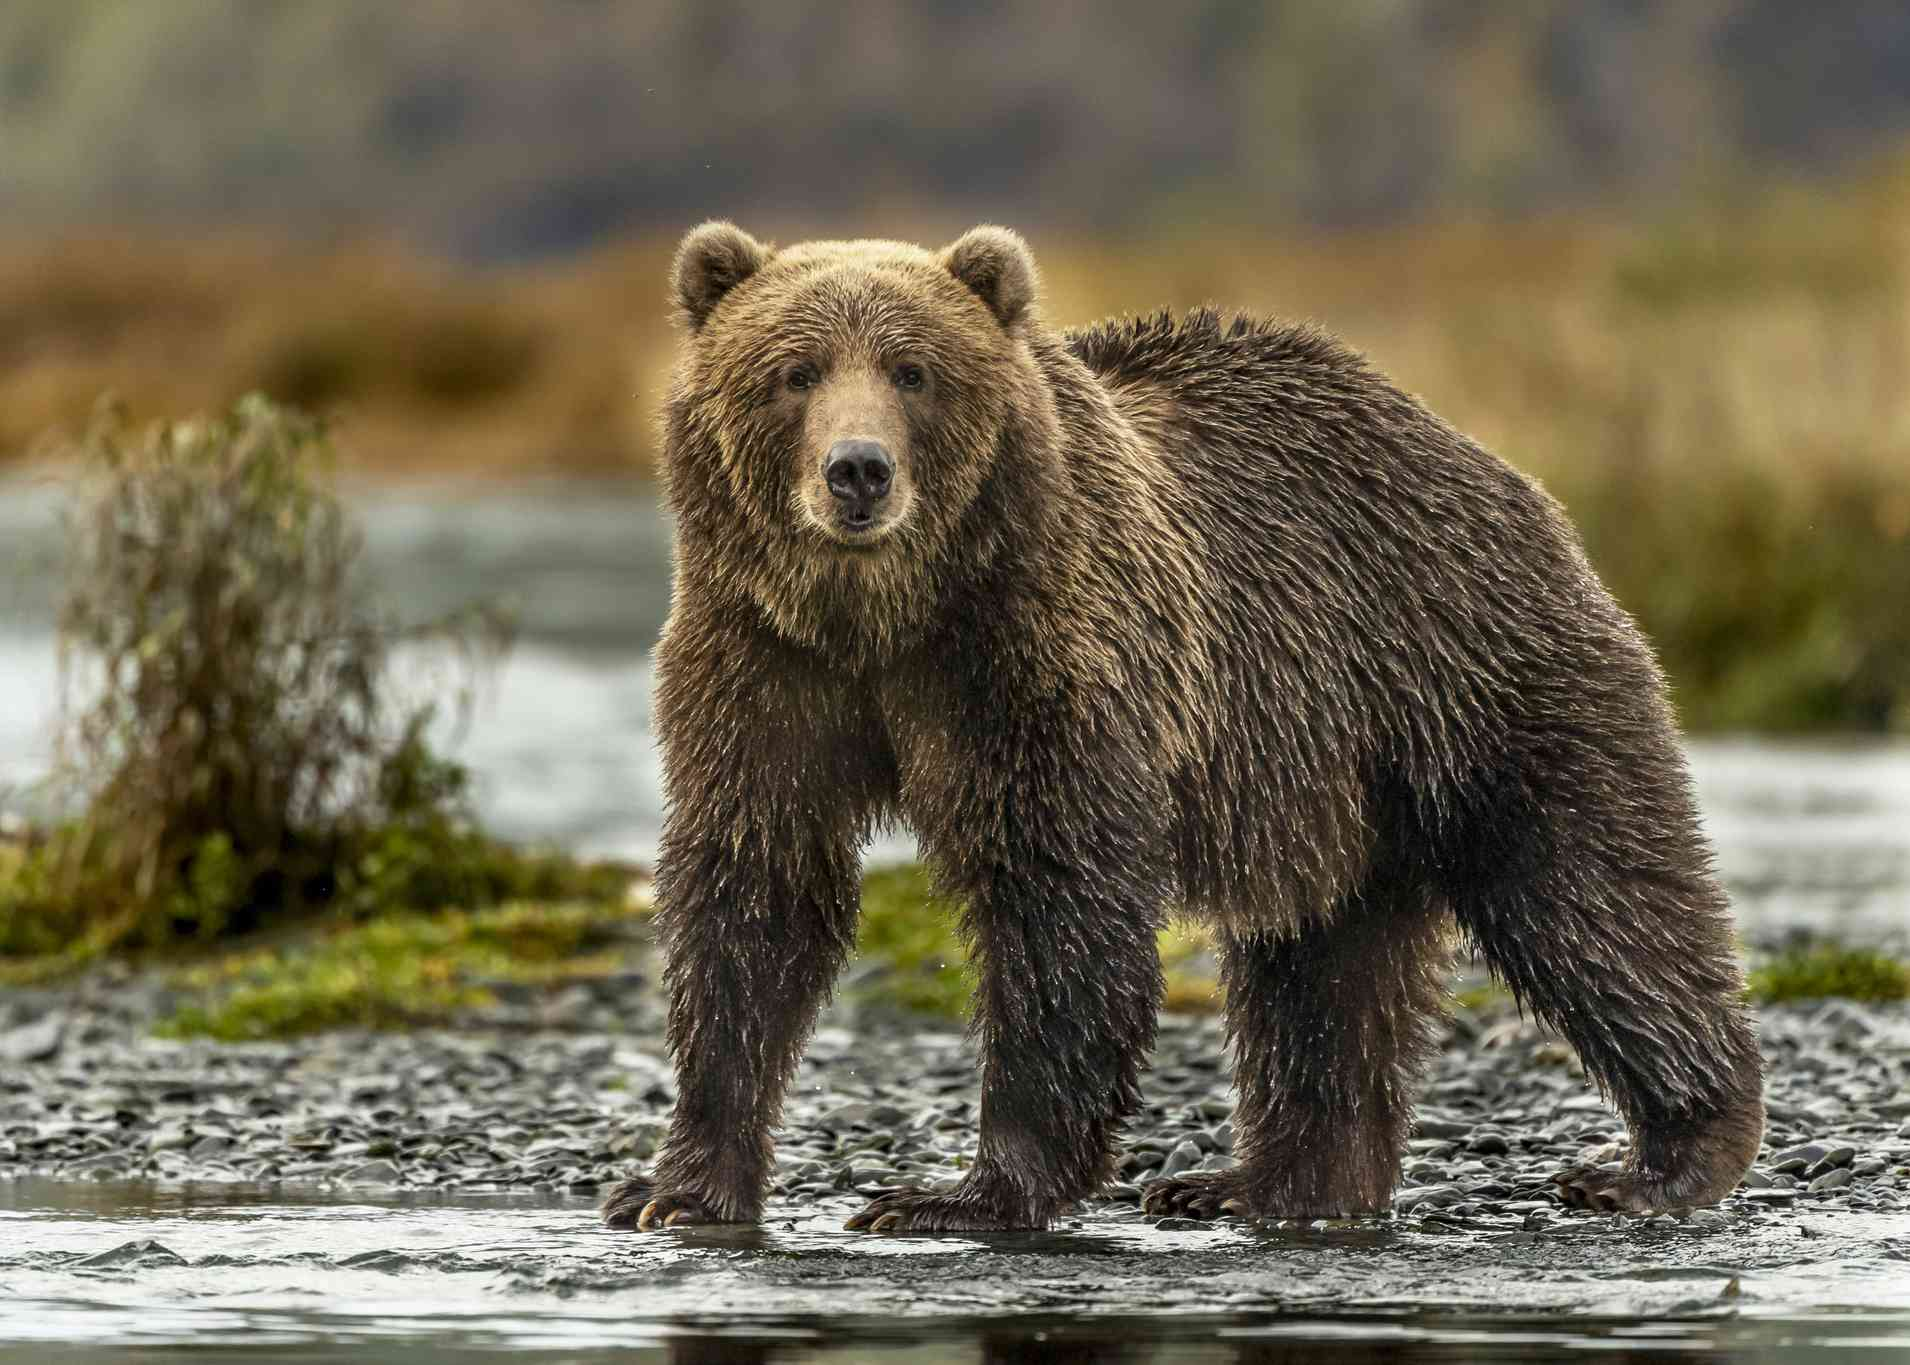 A brown, furry Kodiak grizzly bear standing at the water's edge.